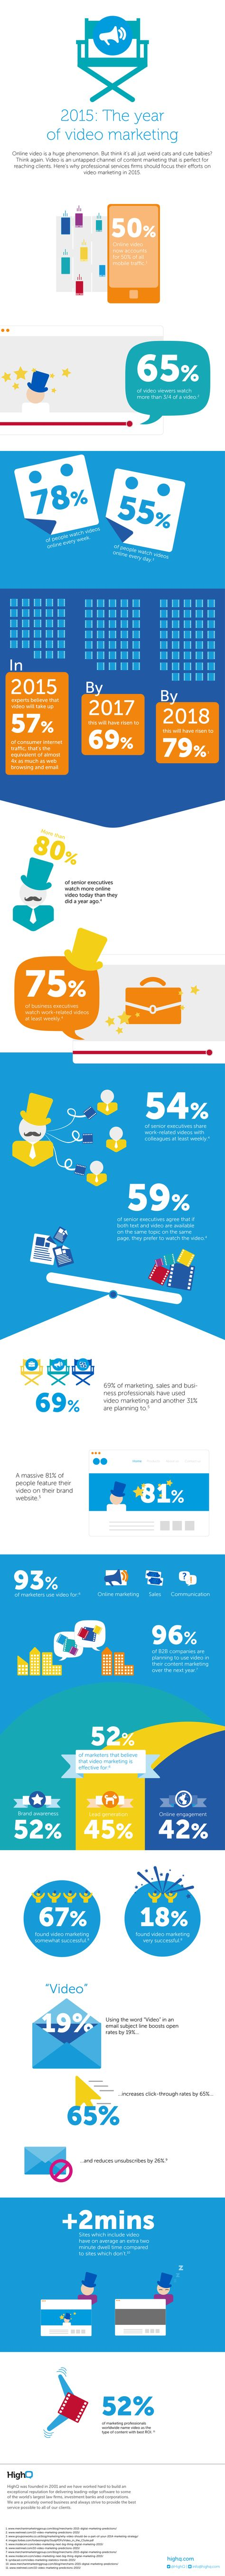 Is Video the Future of Social Marketing? [INFOGRAPHIC]